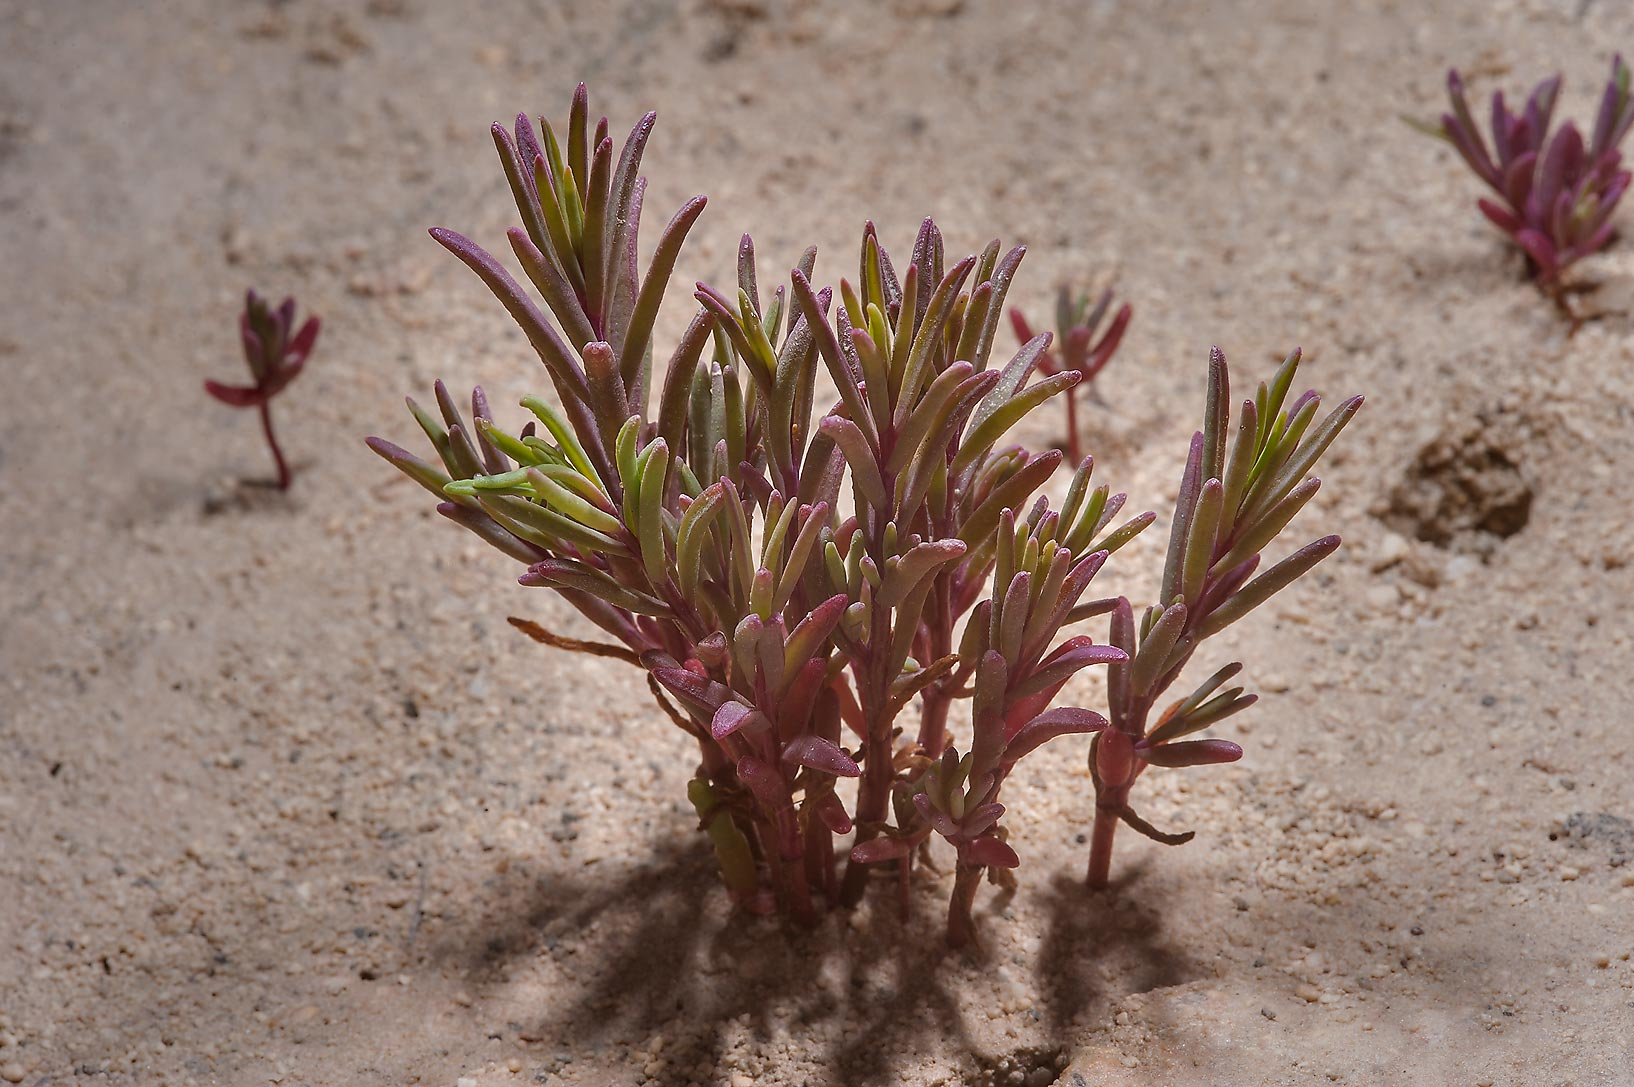 Purple tinged plants of Salsola soda (Suaeda...in Madinat Al Shamal area. Qatar